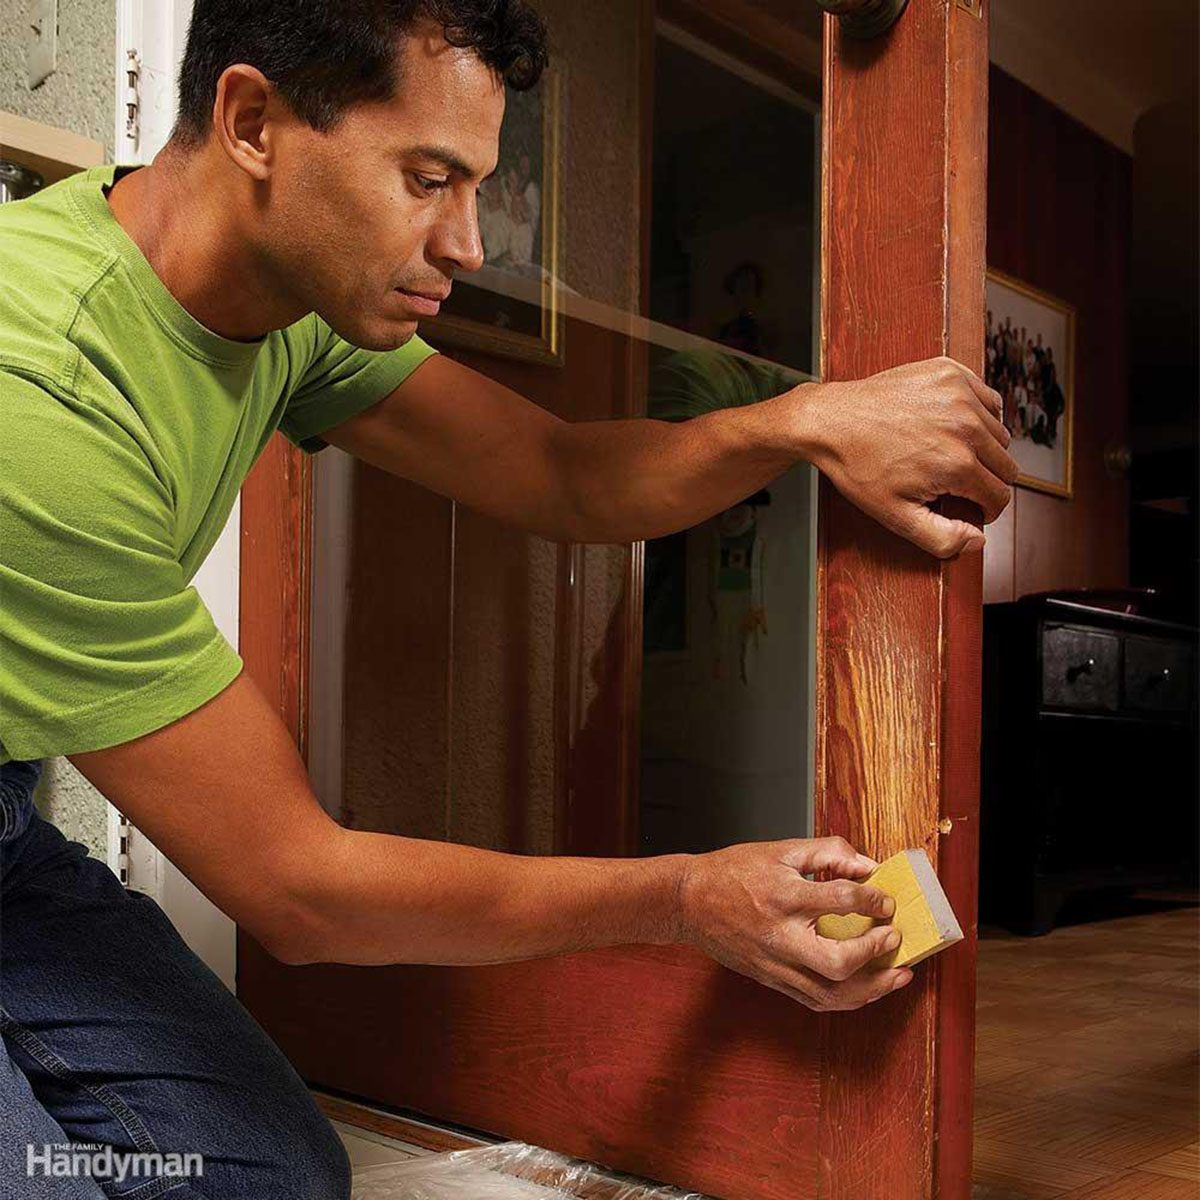 Man wiping over claw marks in a door